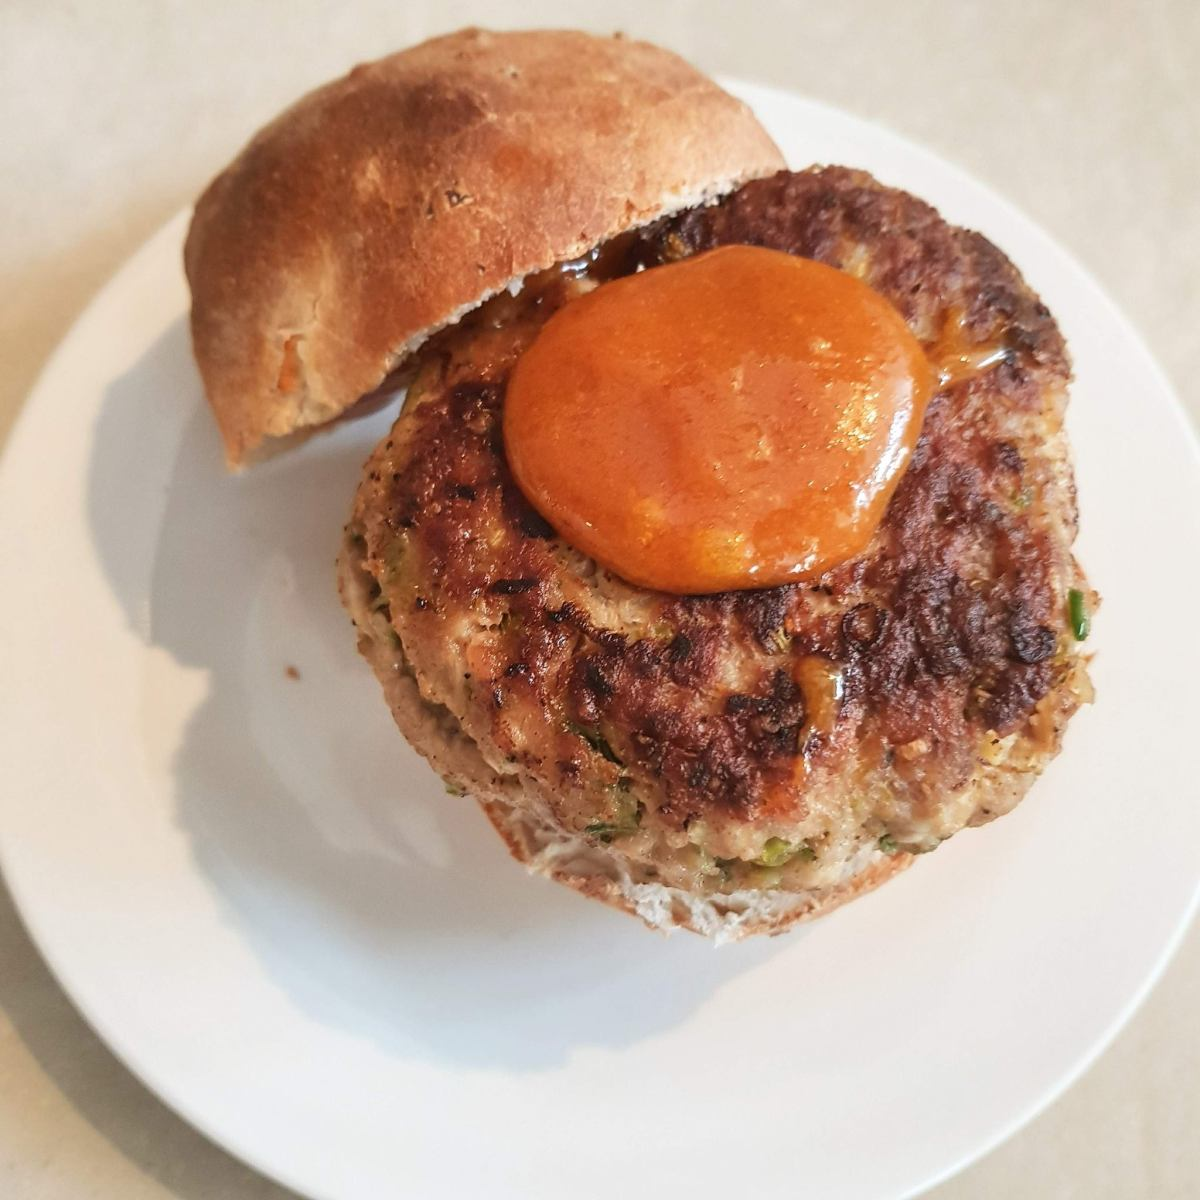 Spiced Turkey Burgers